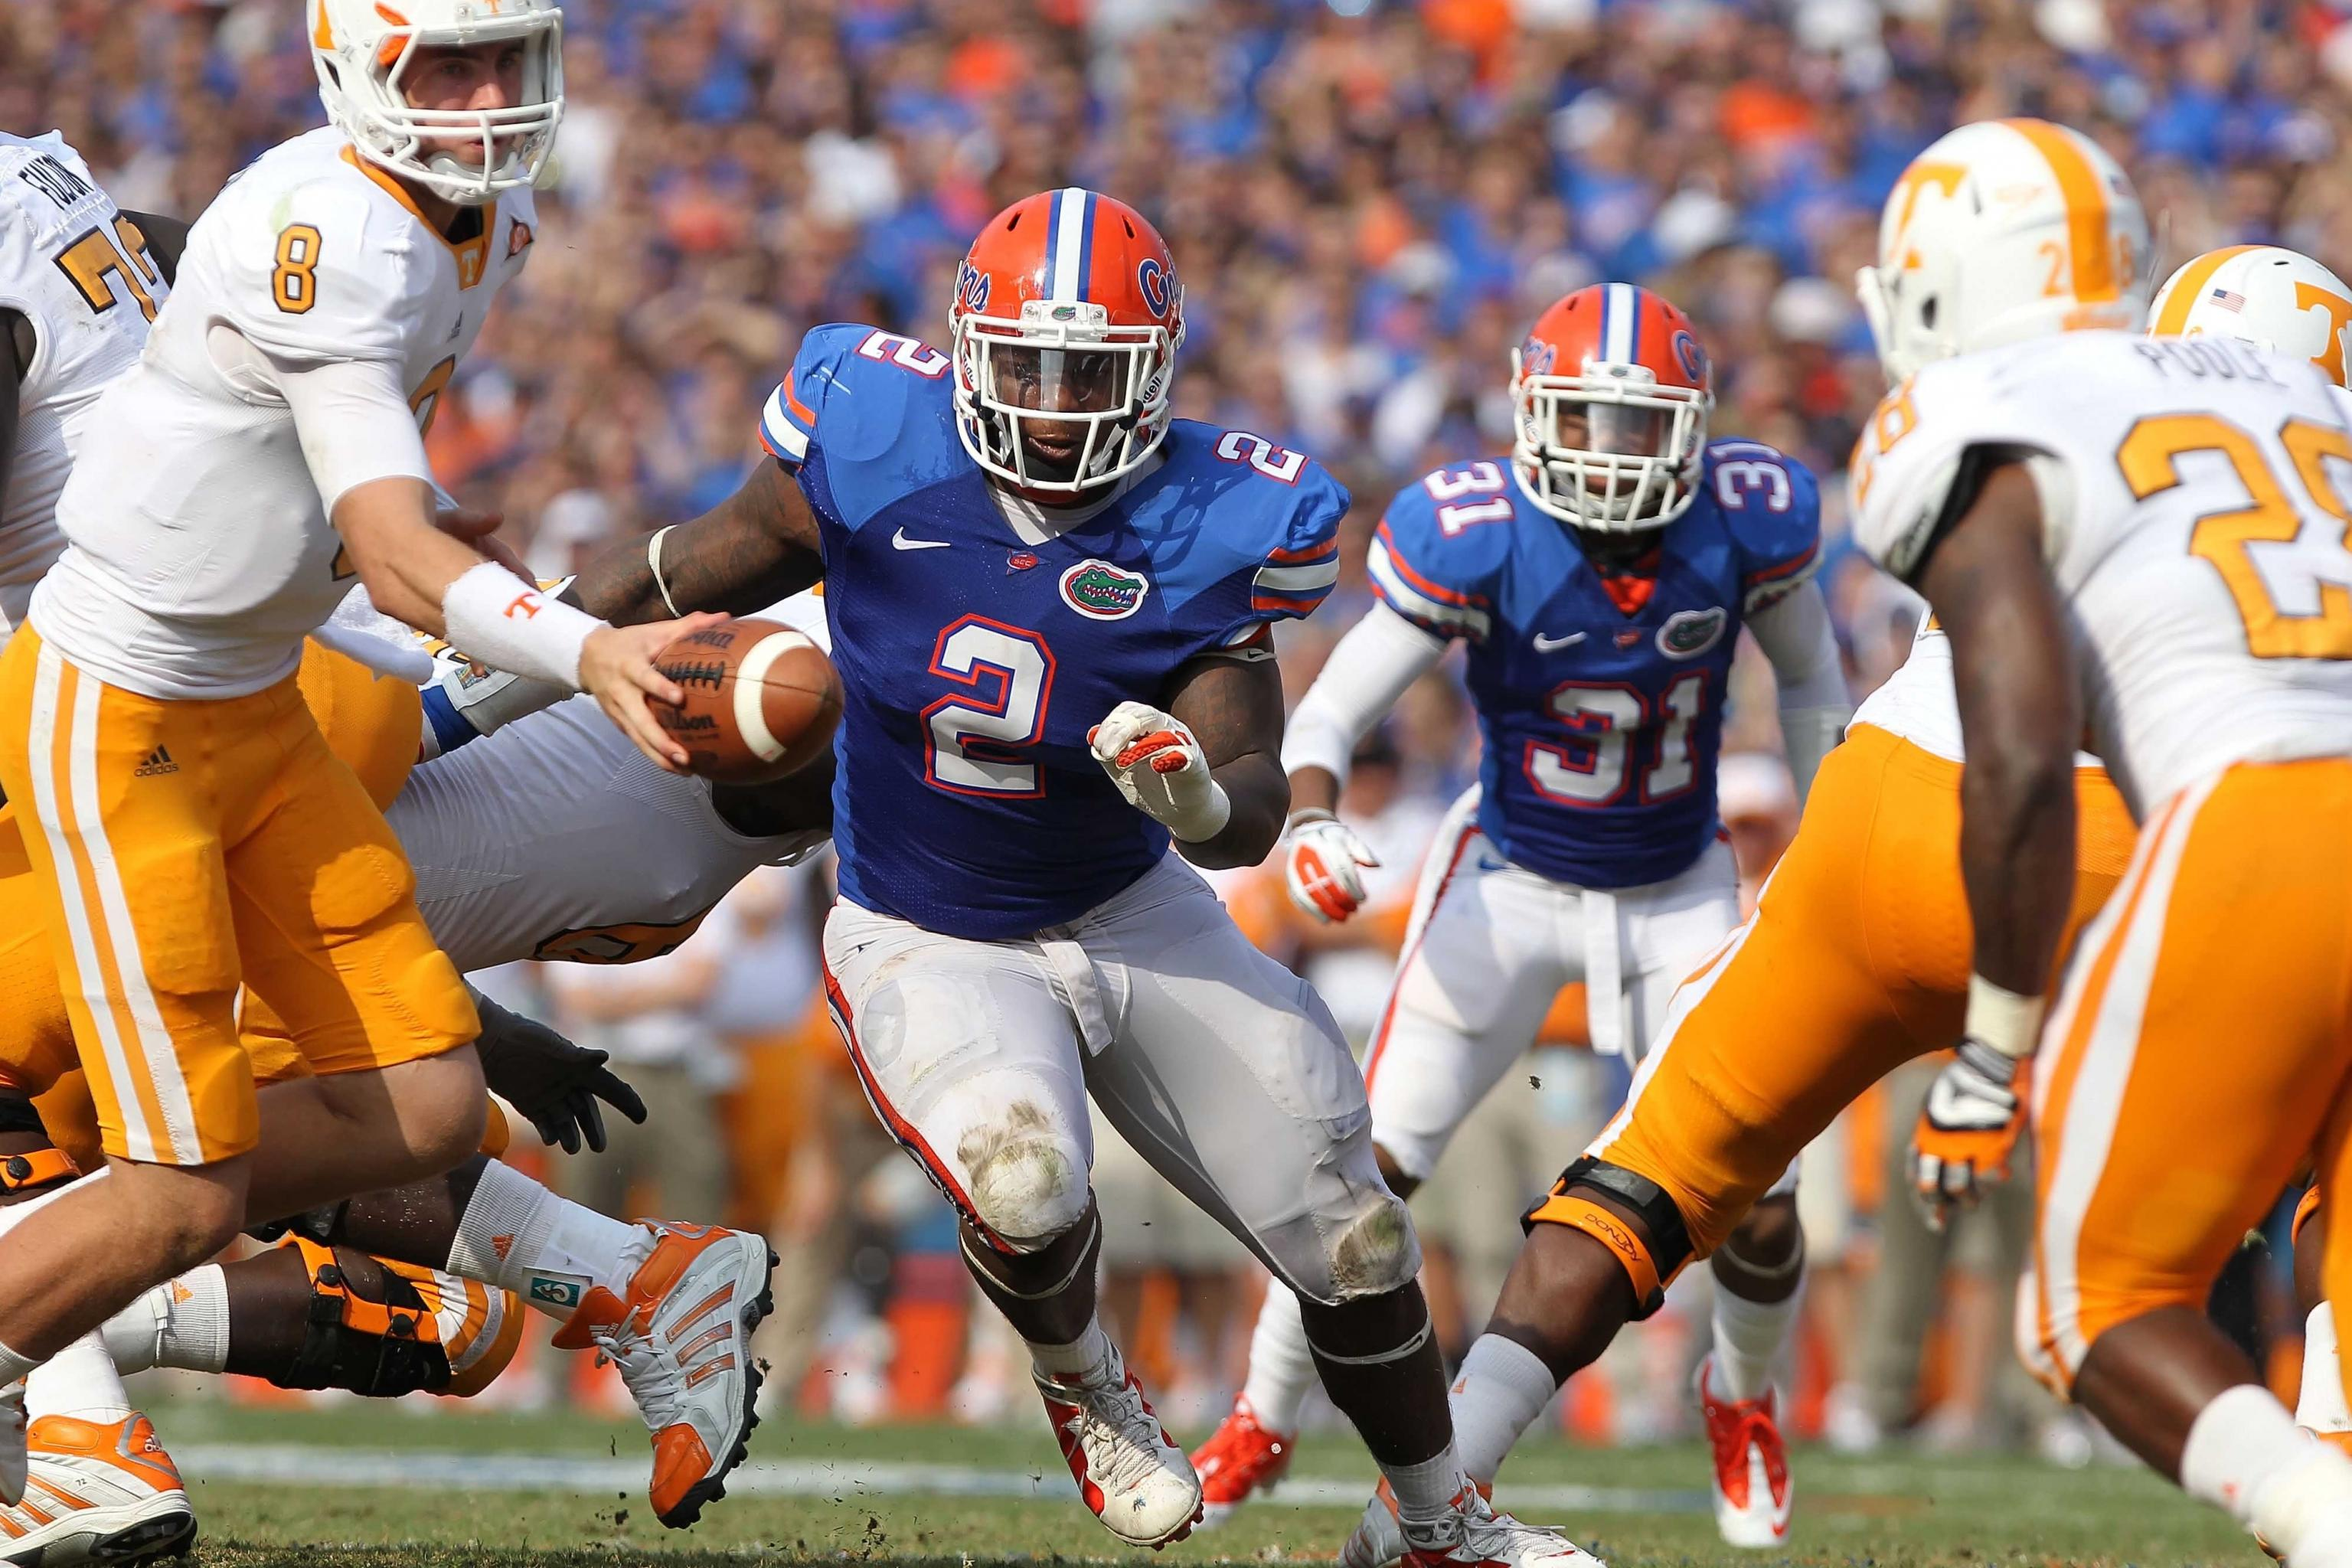 tennessee online betting in